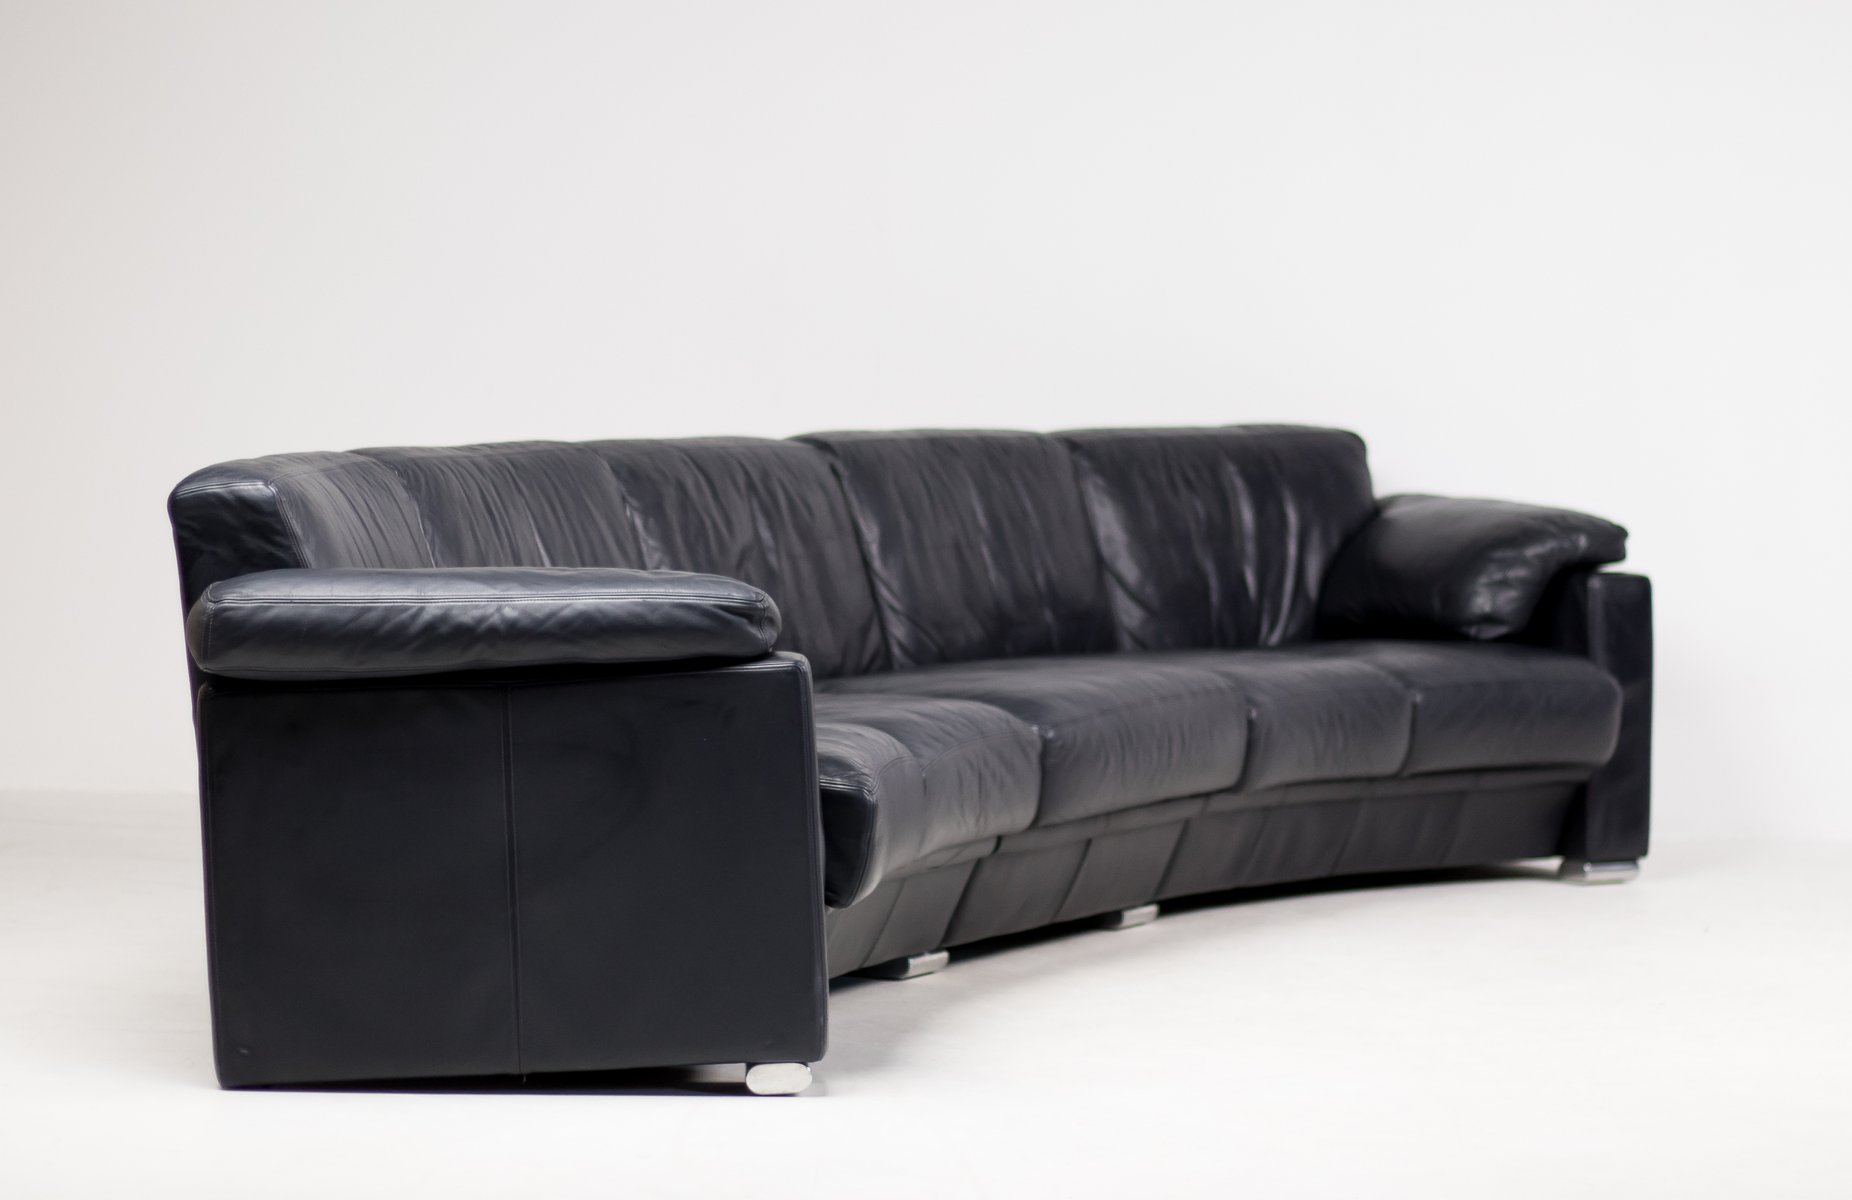 modulares sofa von de sede 1980er bei pamono kaufen. Black Bedroom Furniture Sets. Home Design Ideas